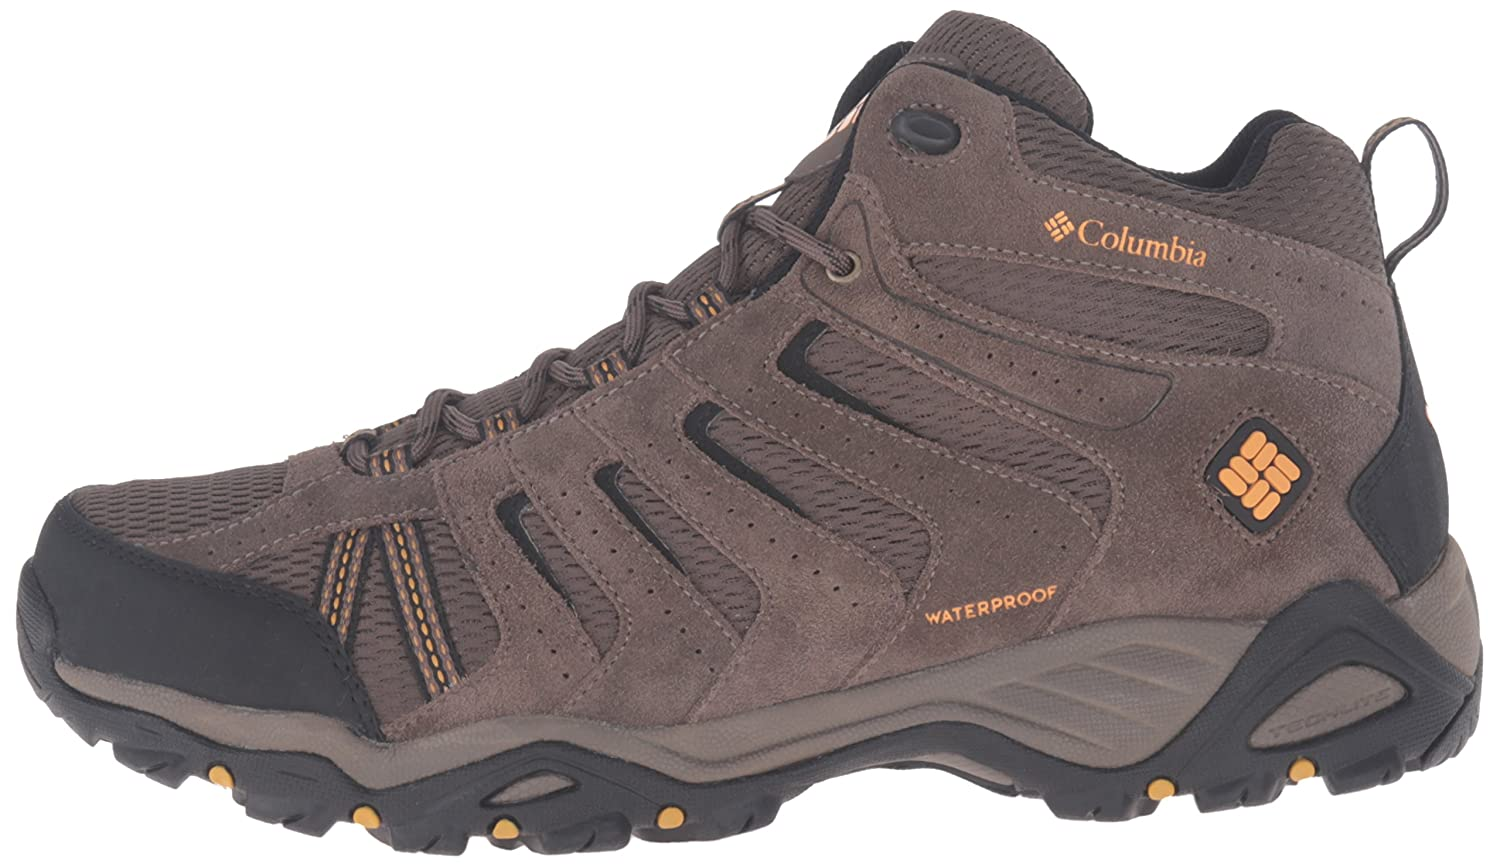 ddfd0963d2fdd3 Columbia Mens North PlainsTM Ii Waterproof Mid Hiking Boot  Amazon.ca  Shoes    Handbags